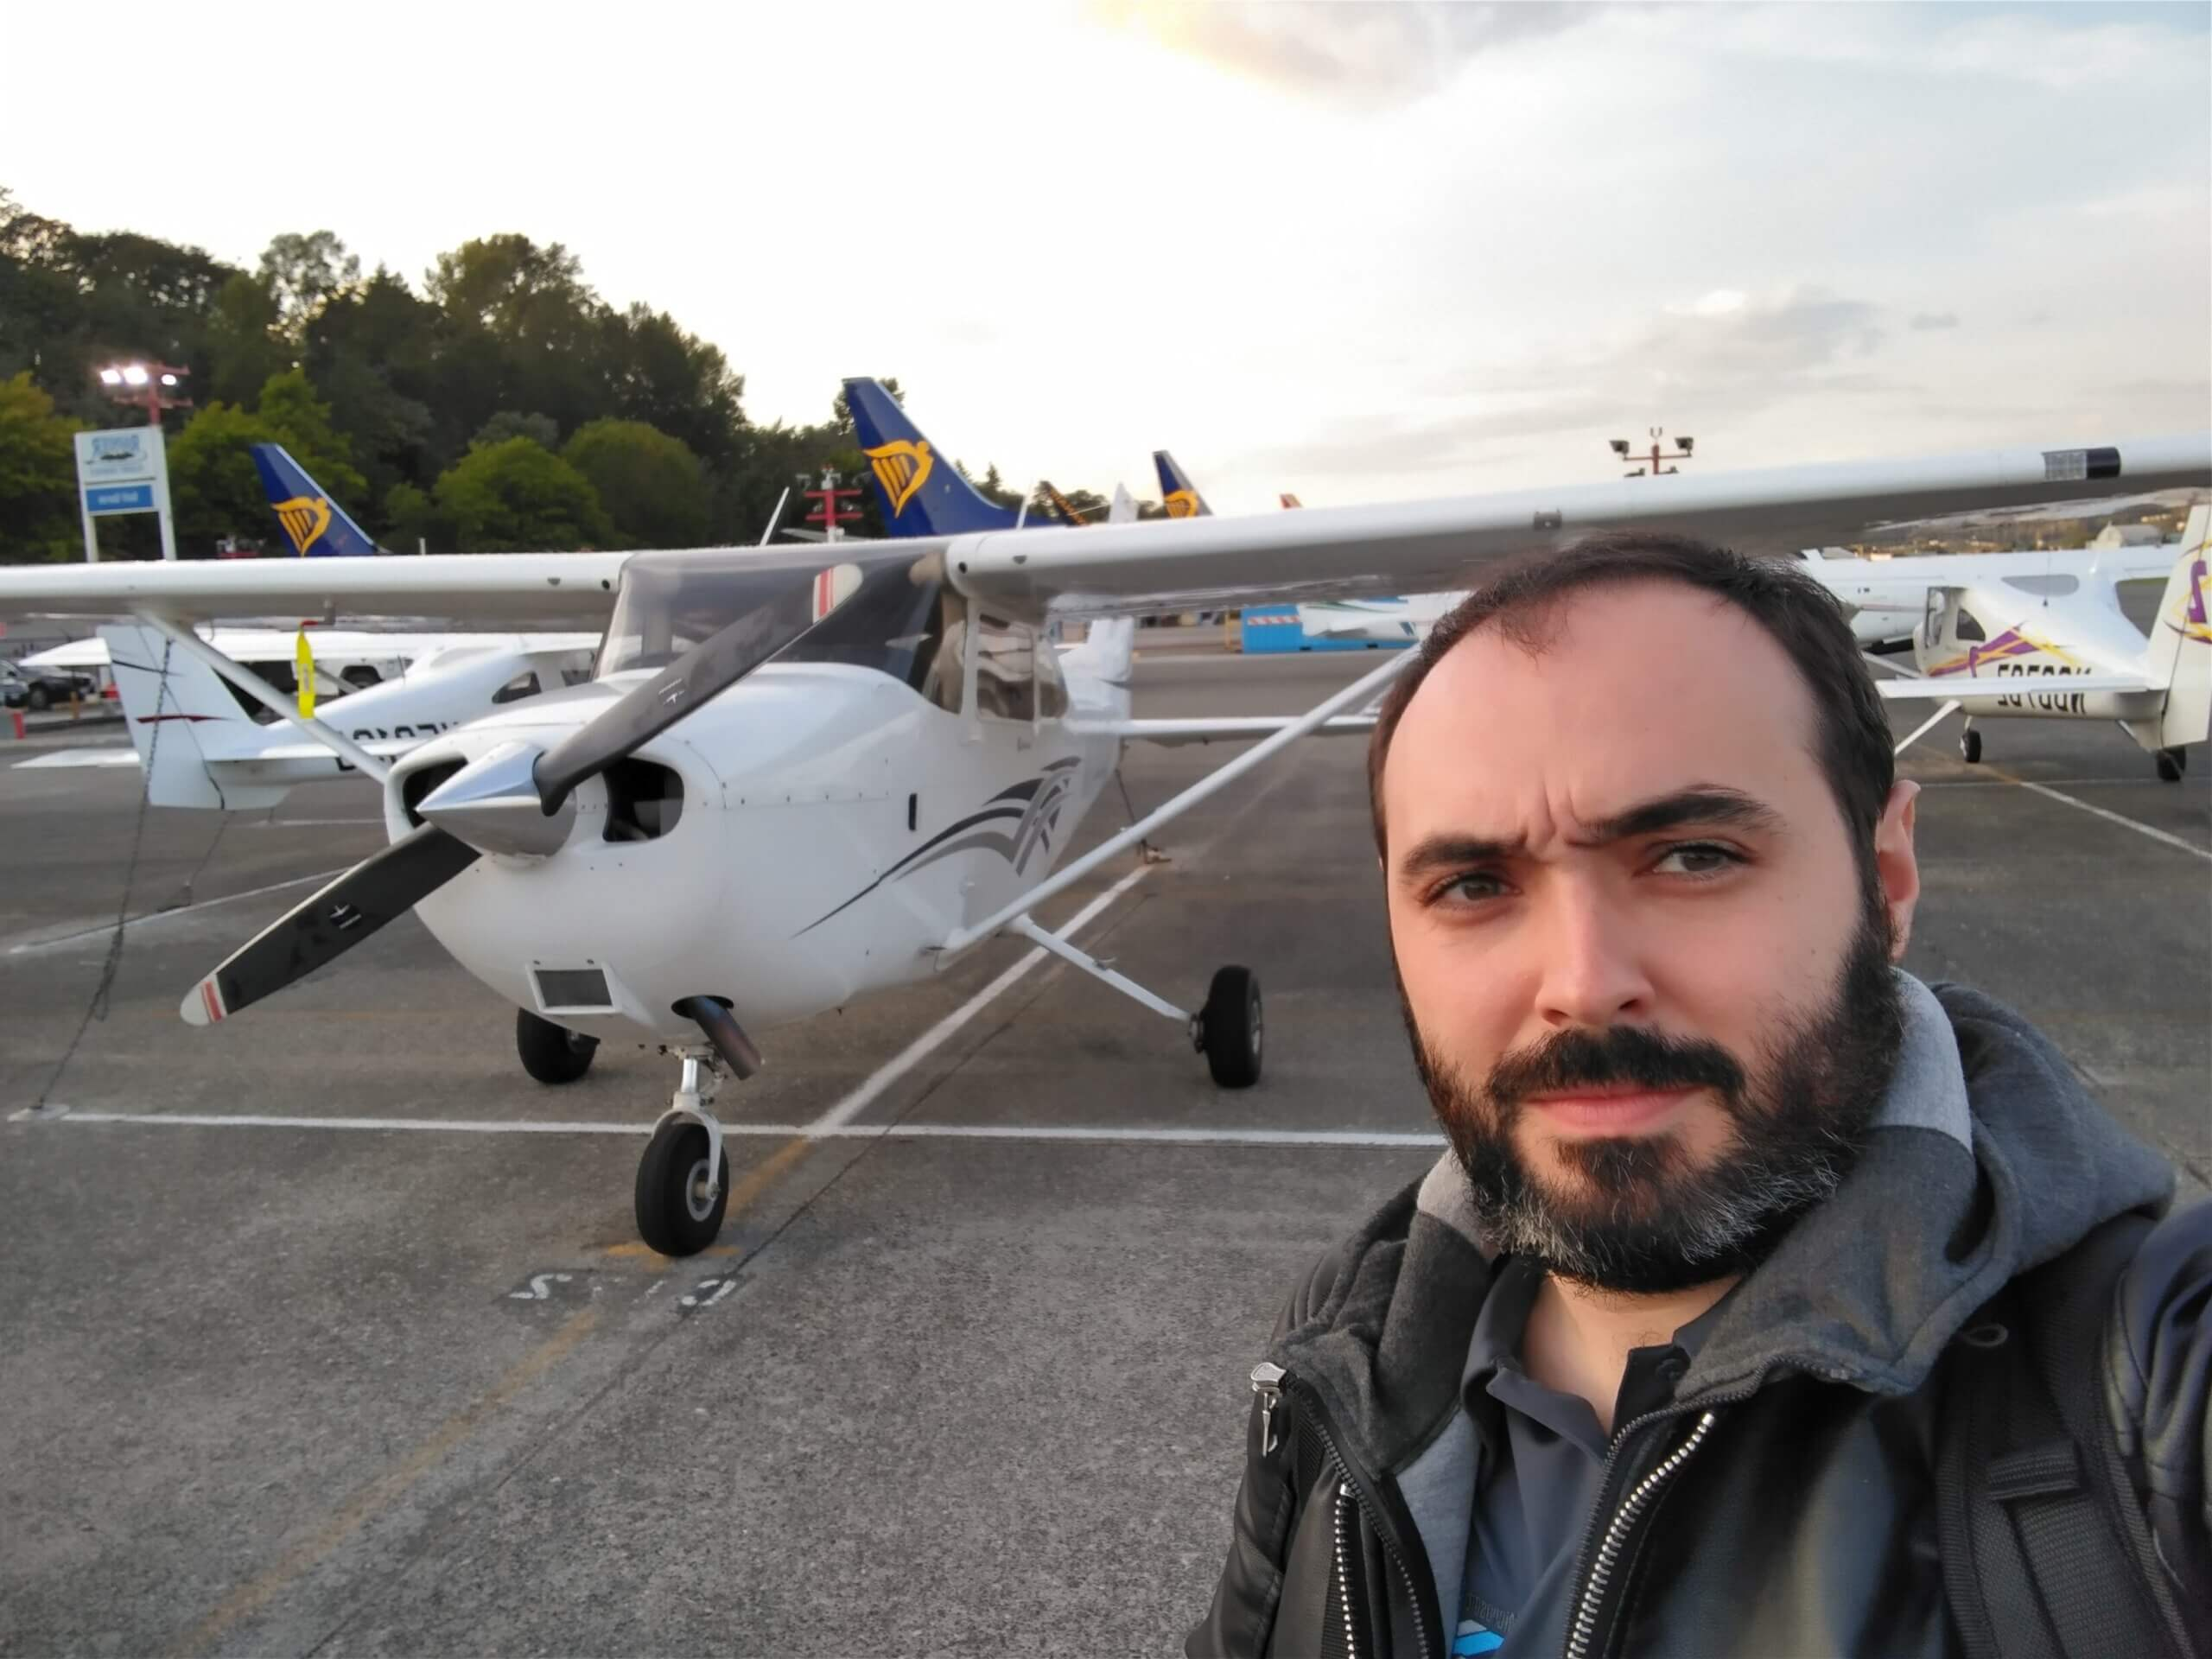 Lionel standing in front of a small plane